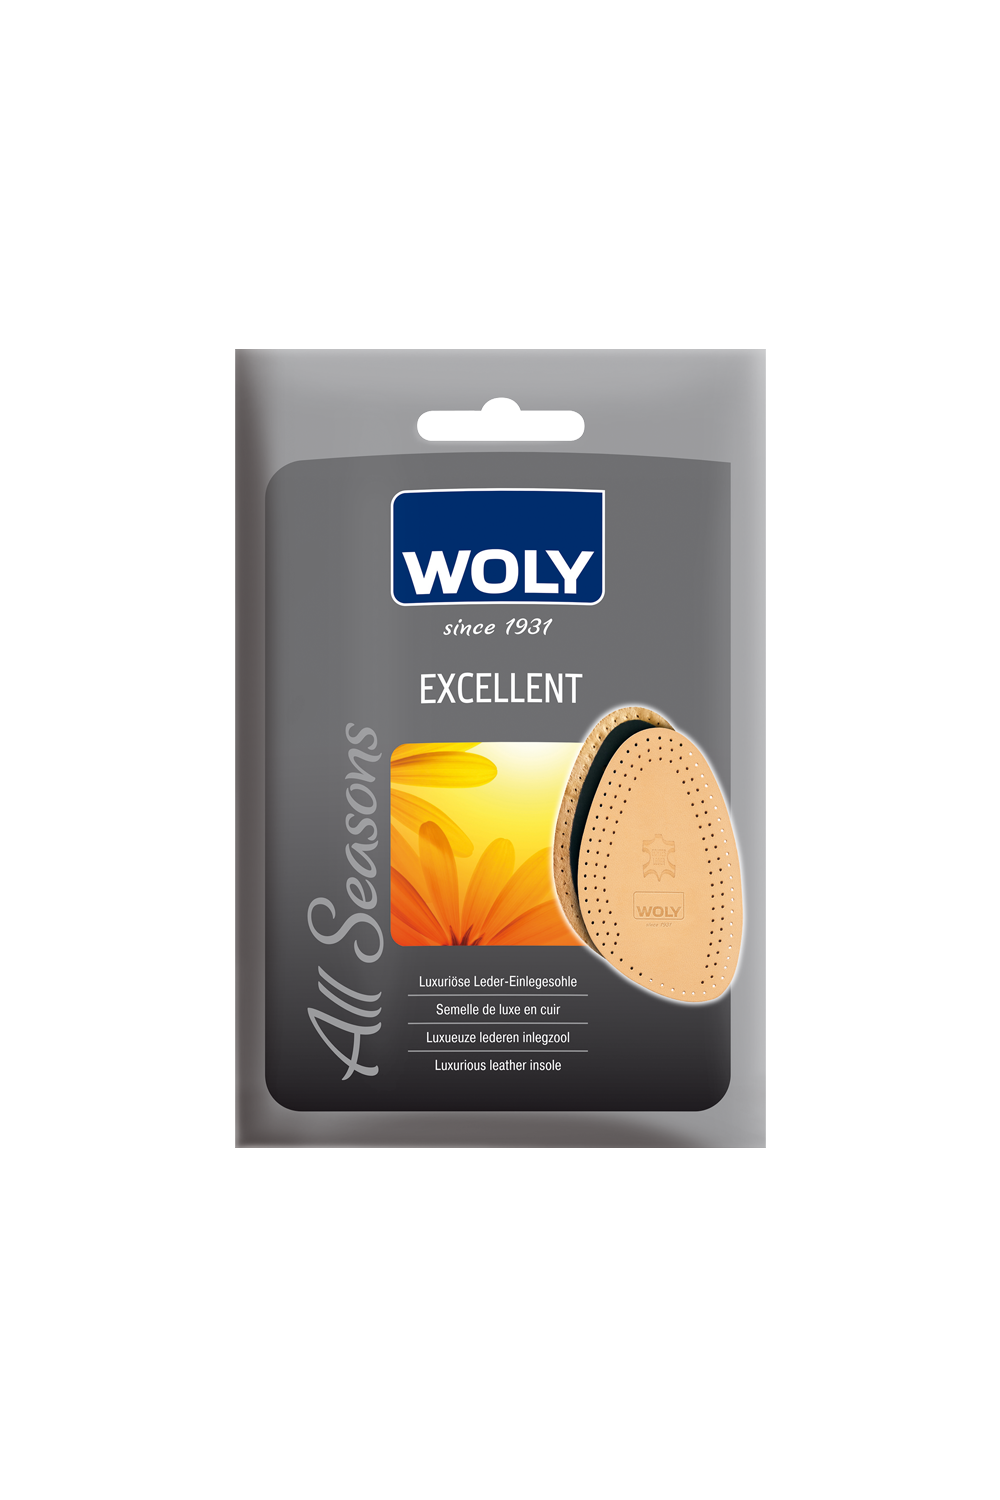 Woly 1809 Excellent